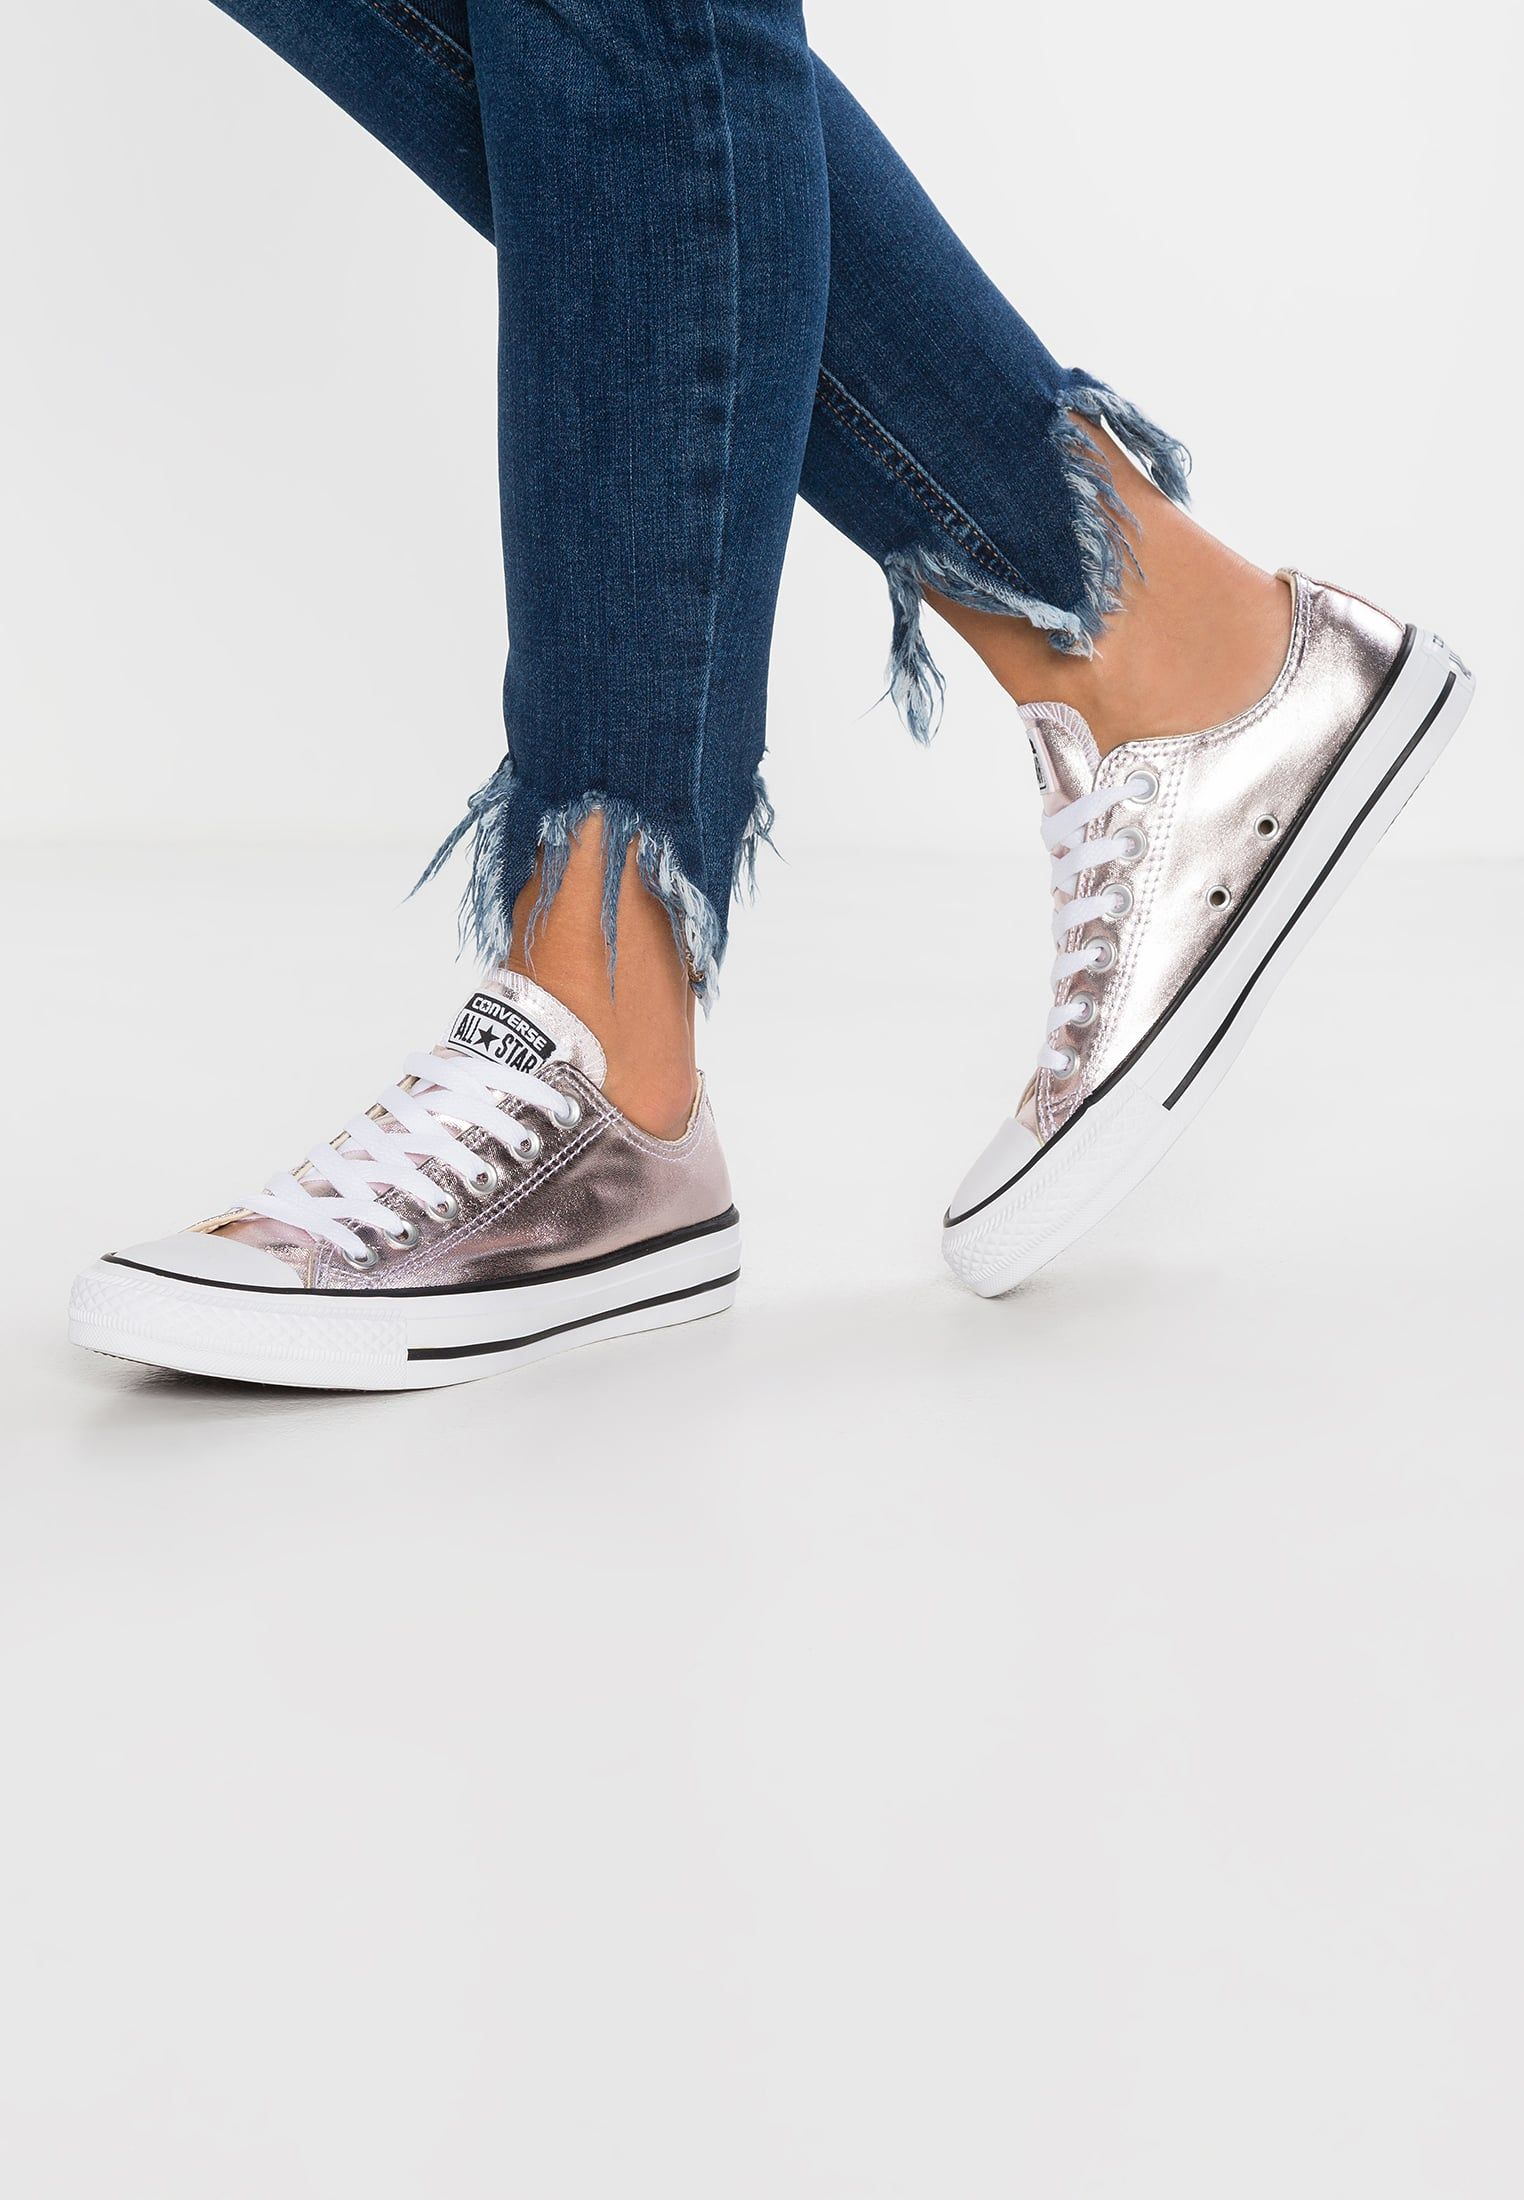 fecd127d960c4 Converse CHUCK TAYLOR ALL STAR METALLIC CANVAS - Baskets basses - rose  quartz white black - ZALANDO.FR